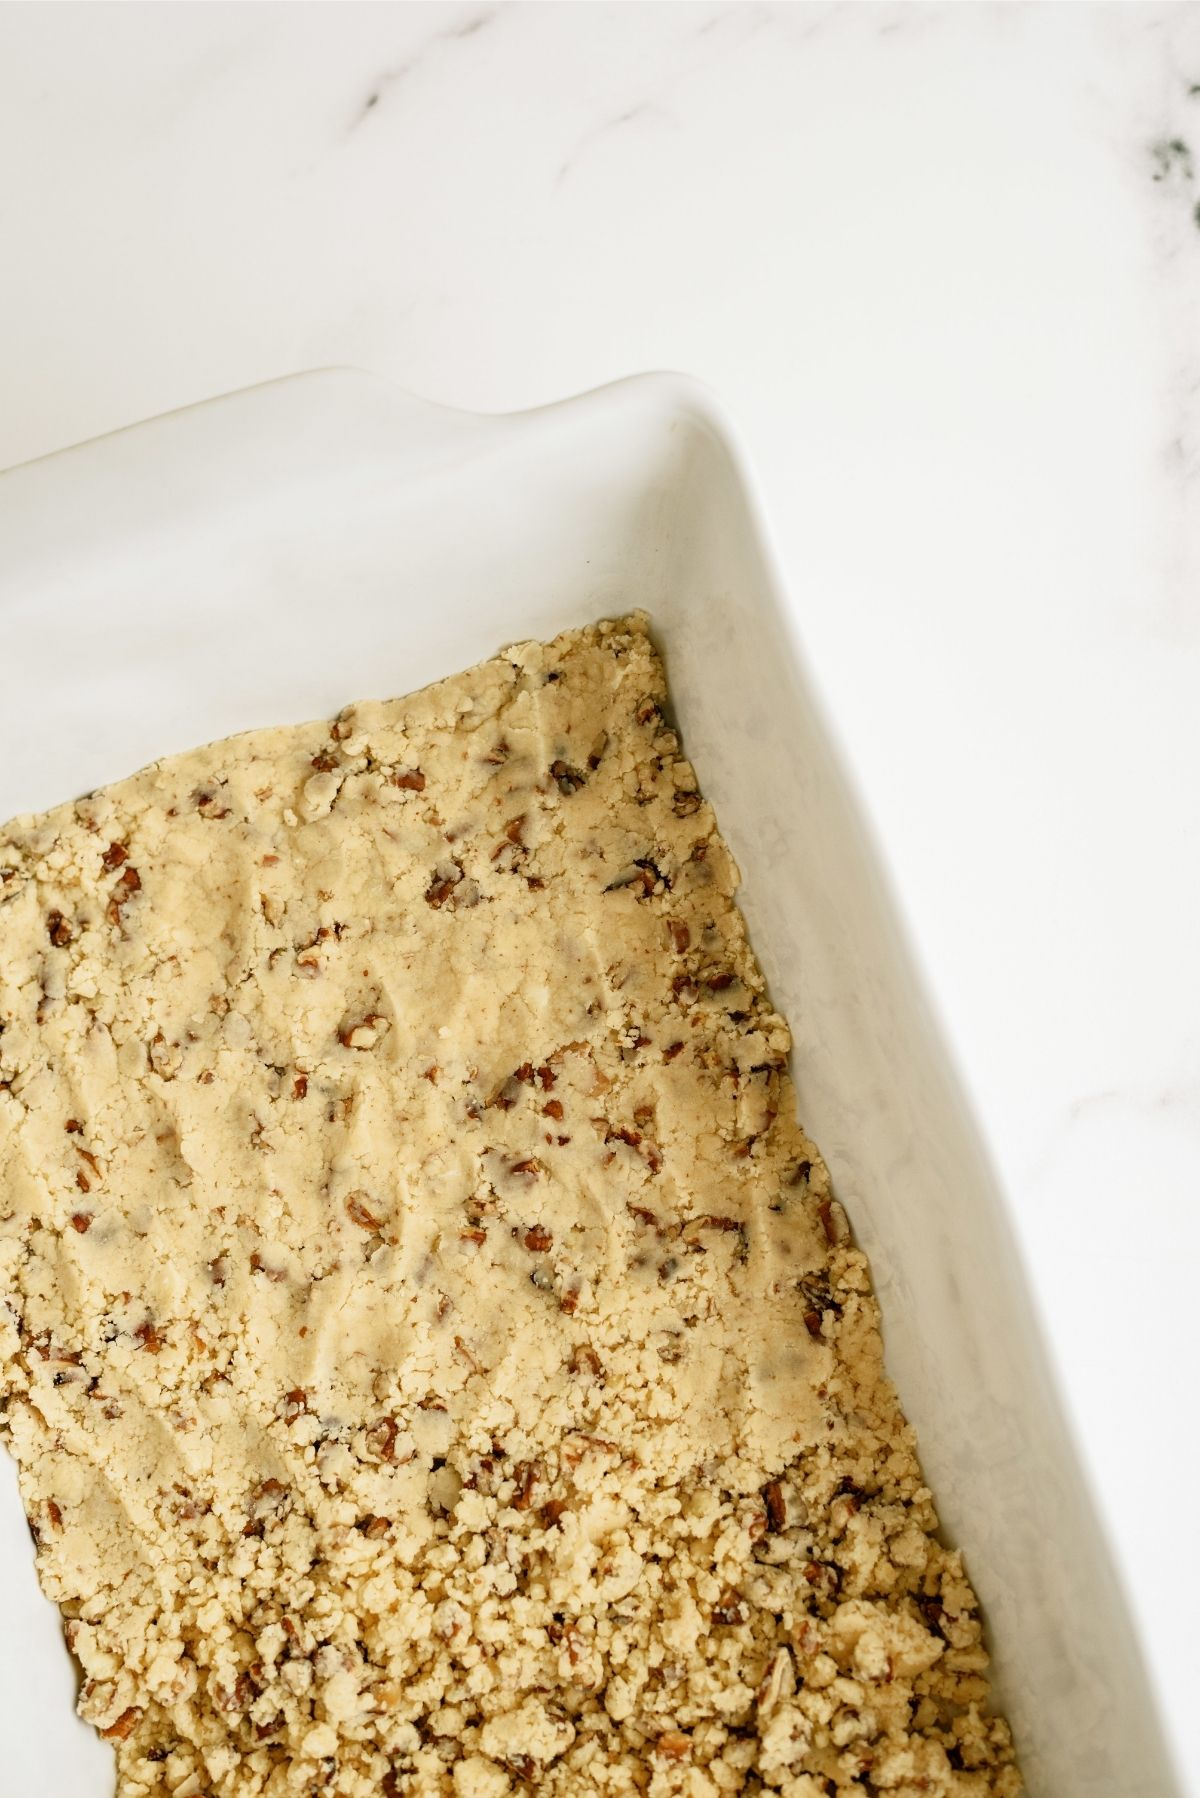 Pecan and flour mix pressed into a baking dish